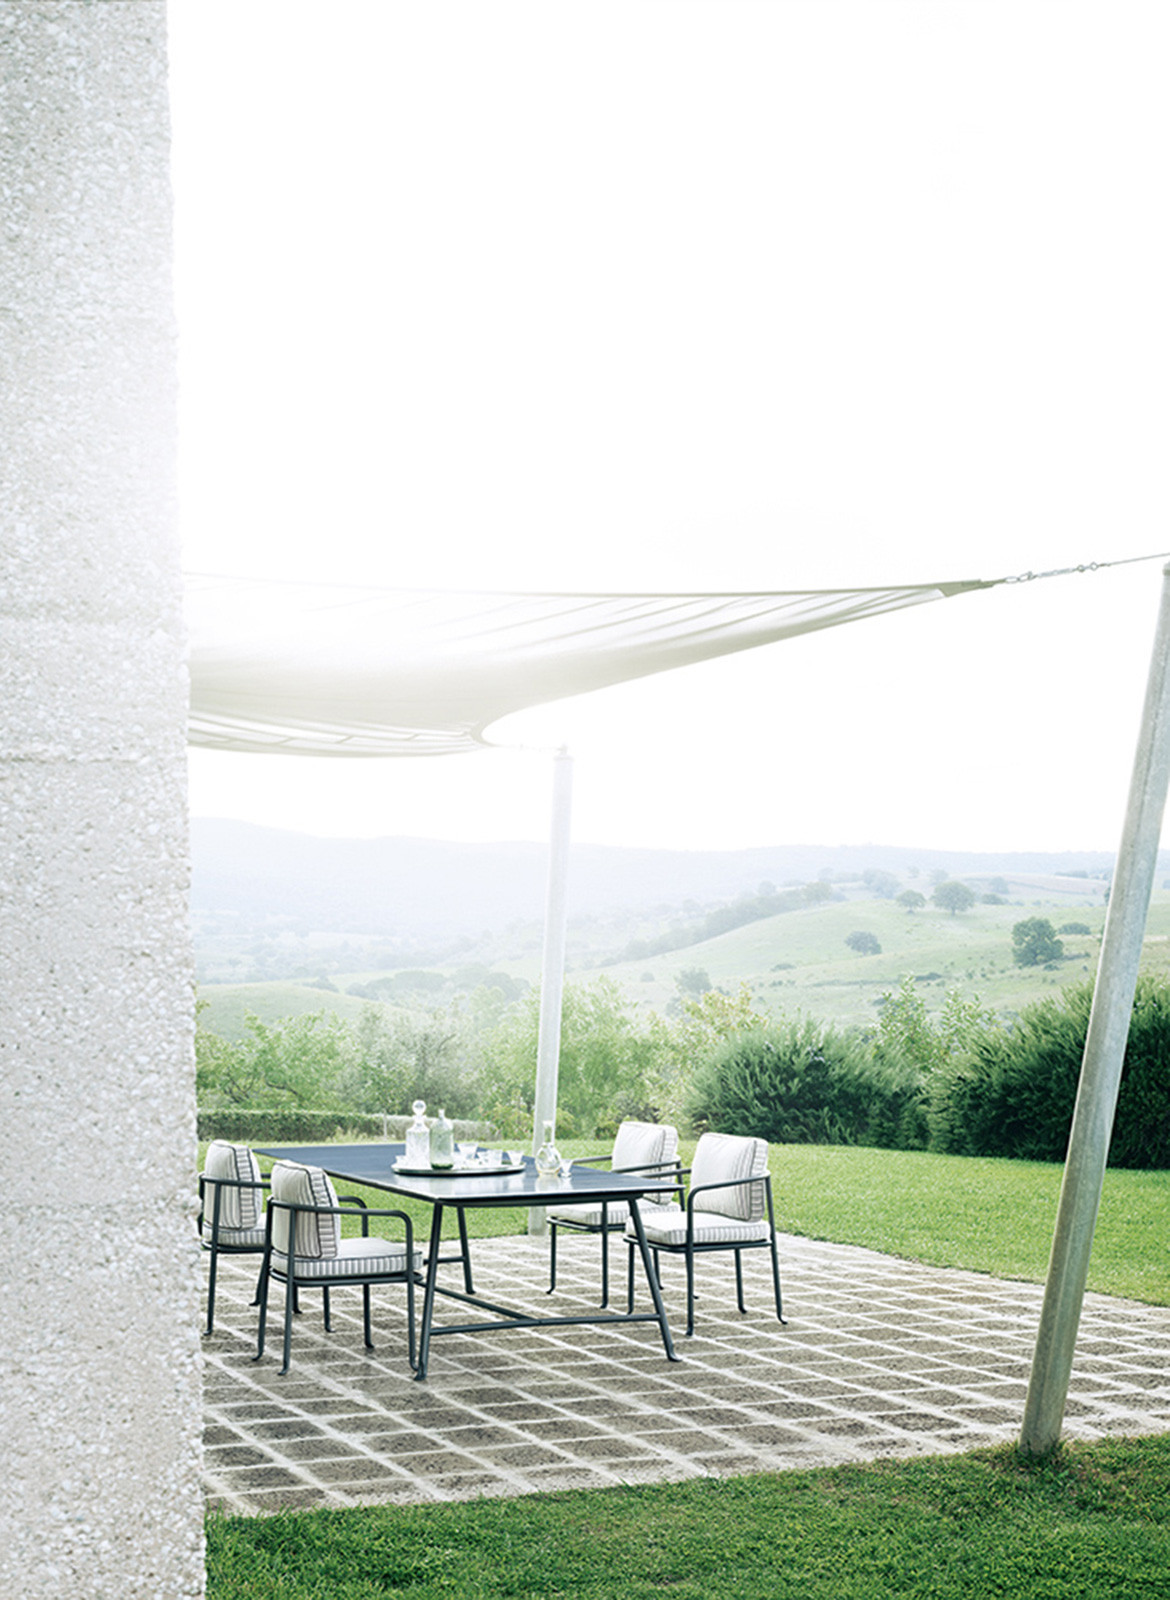 b&b italia borea outdoor setting